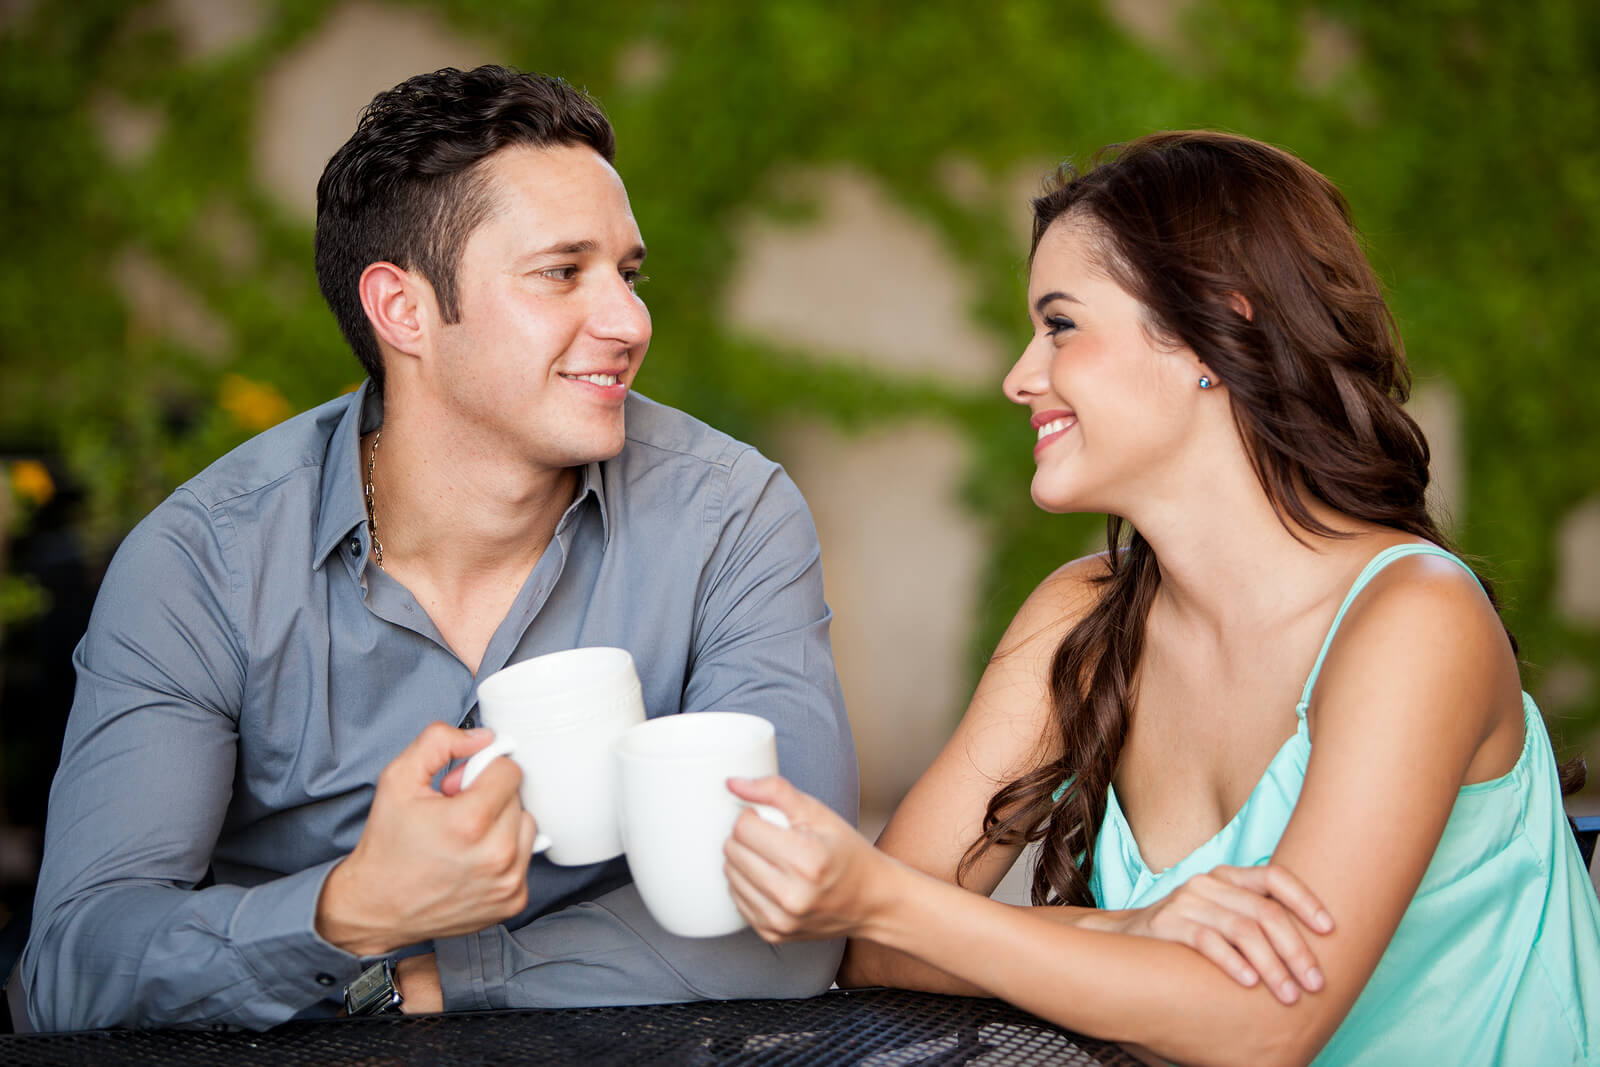 Online dating how to win a woman on first date